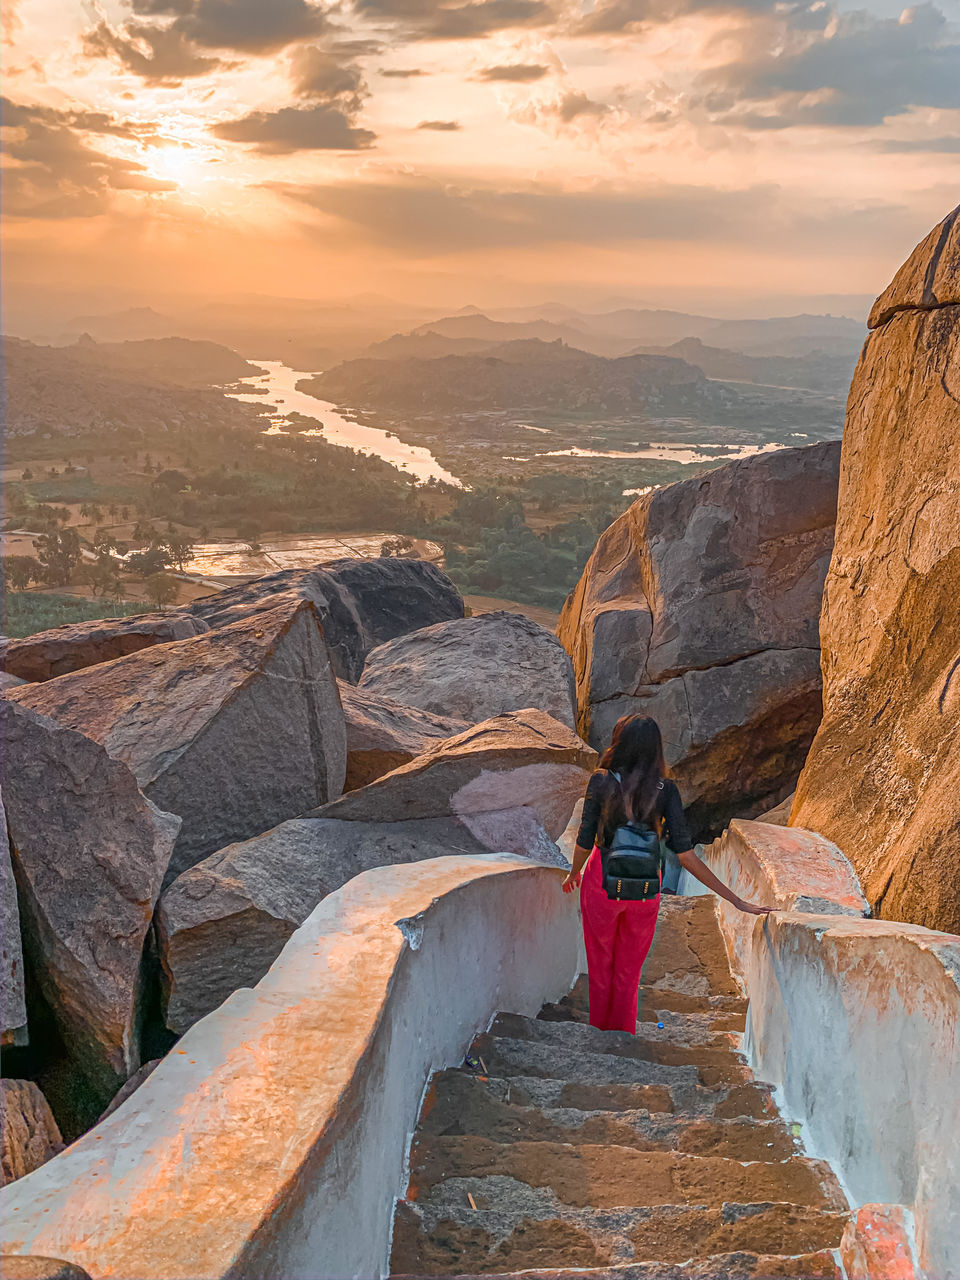 Photo of 5 Things You Must Do When You Visit Hampi 6/11 by ApyTravelStories